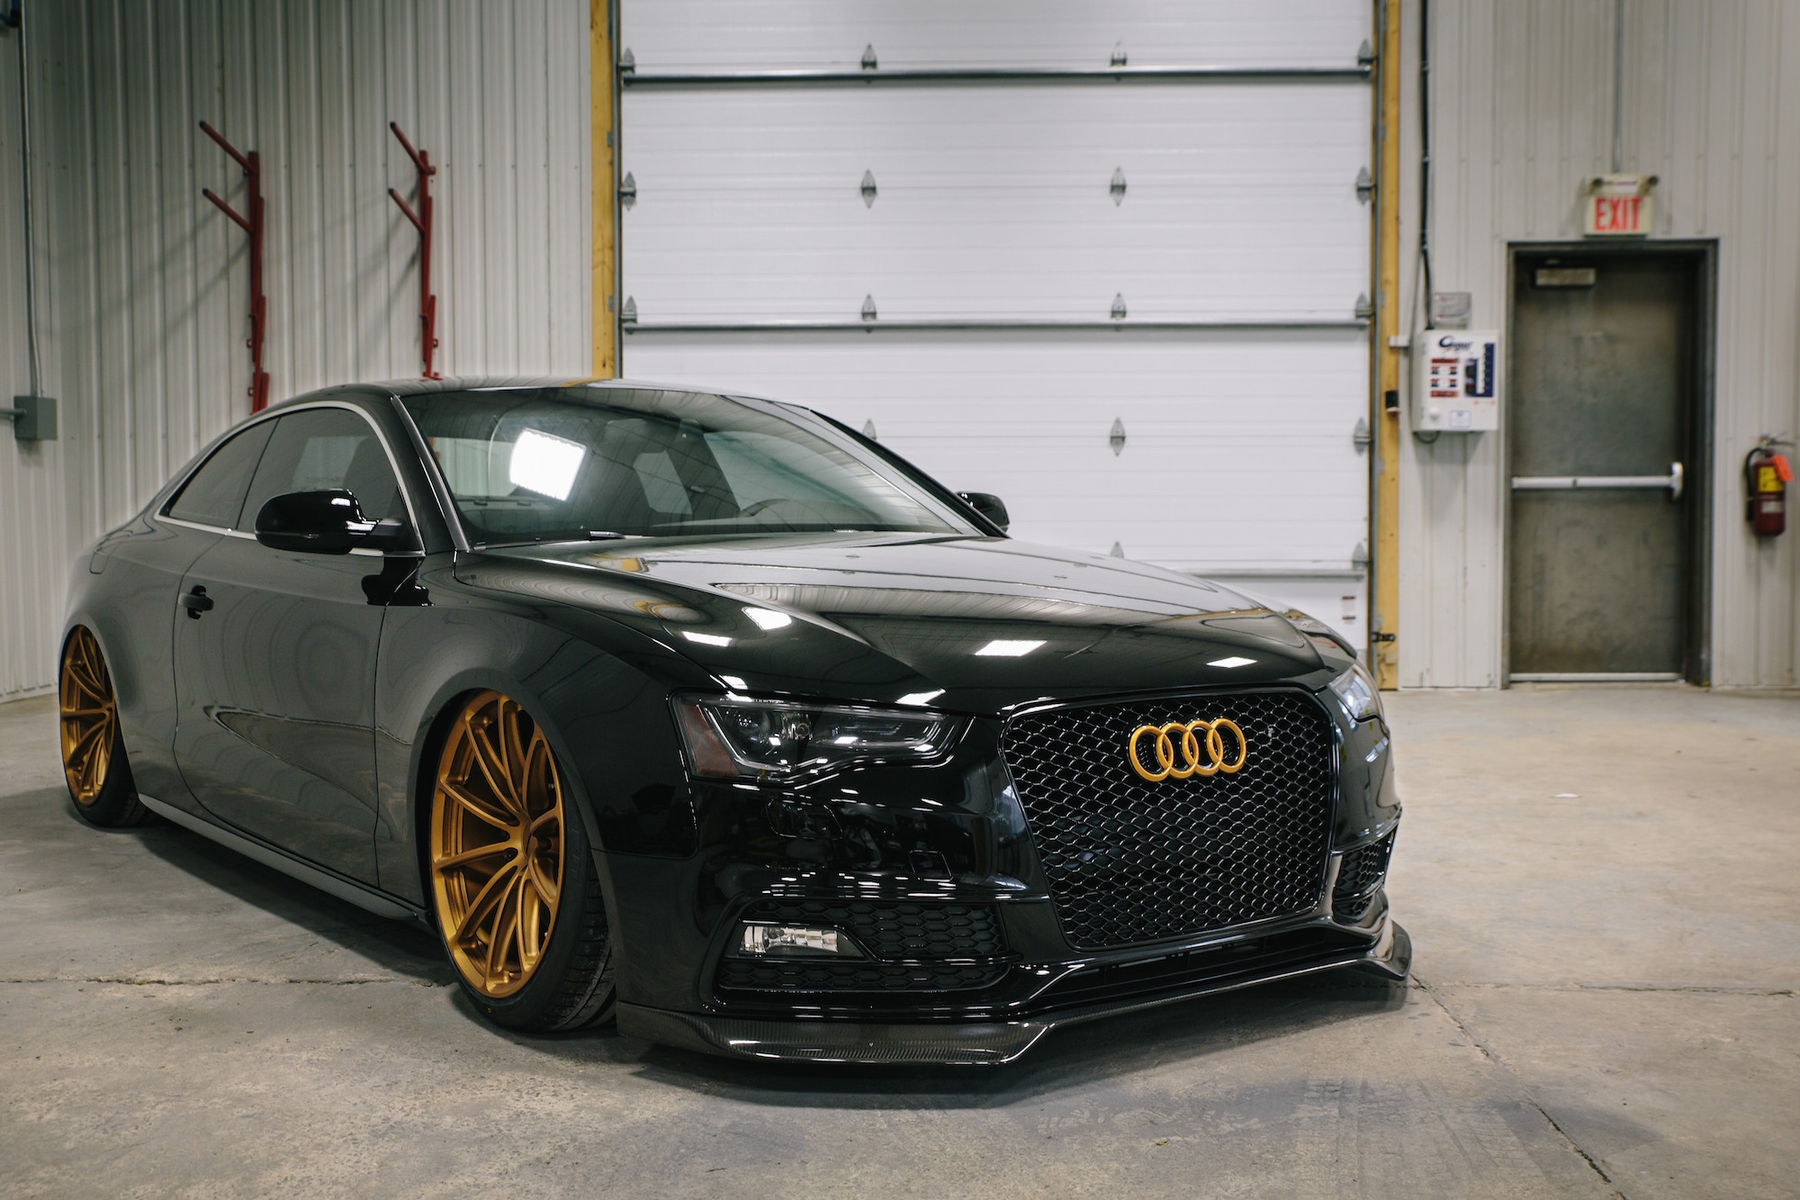 2016 Audi S5   Prostate Cancer Canada's Bagged Audi S5 Coupe on Forgeline One Piece Forged Monoblock GT1 5-Lug Wheels